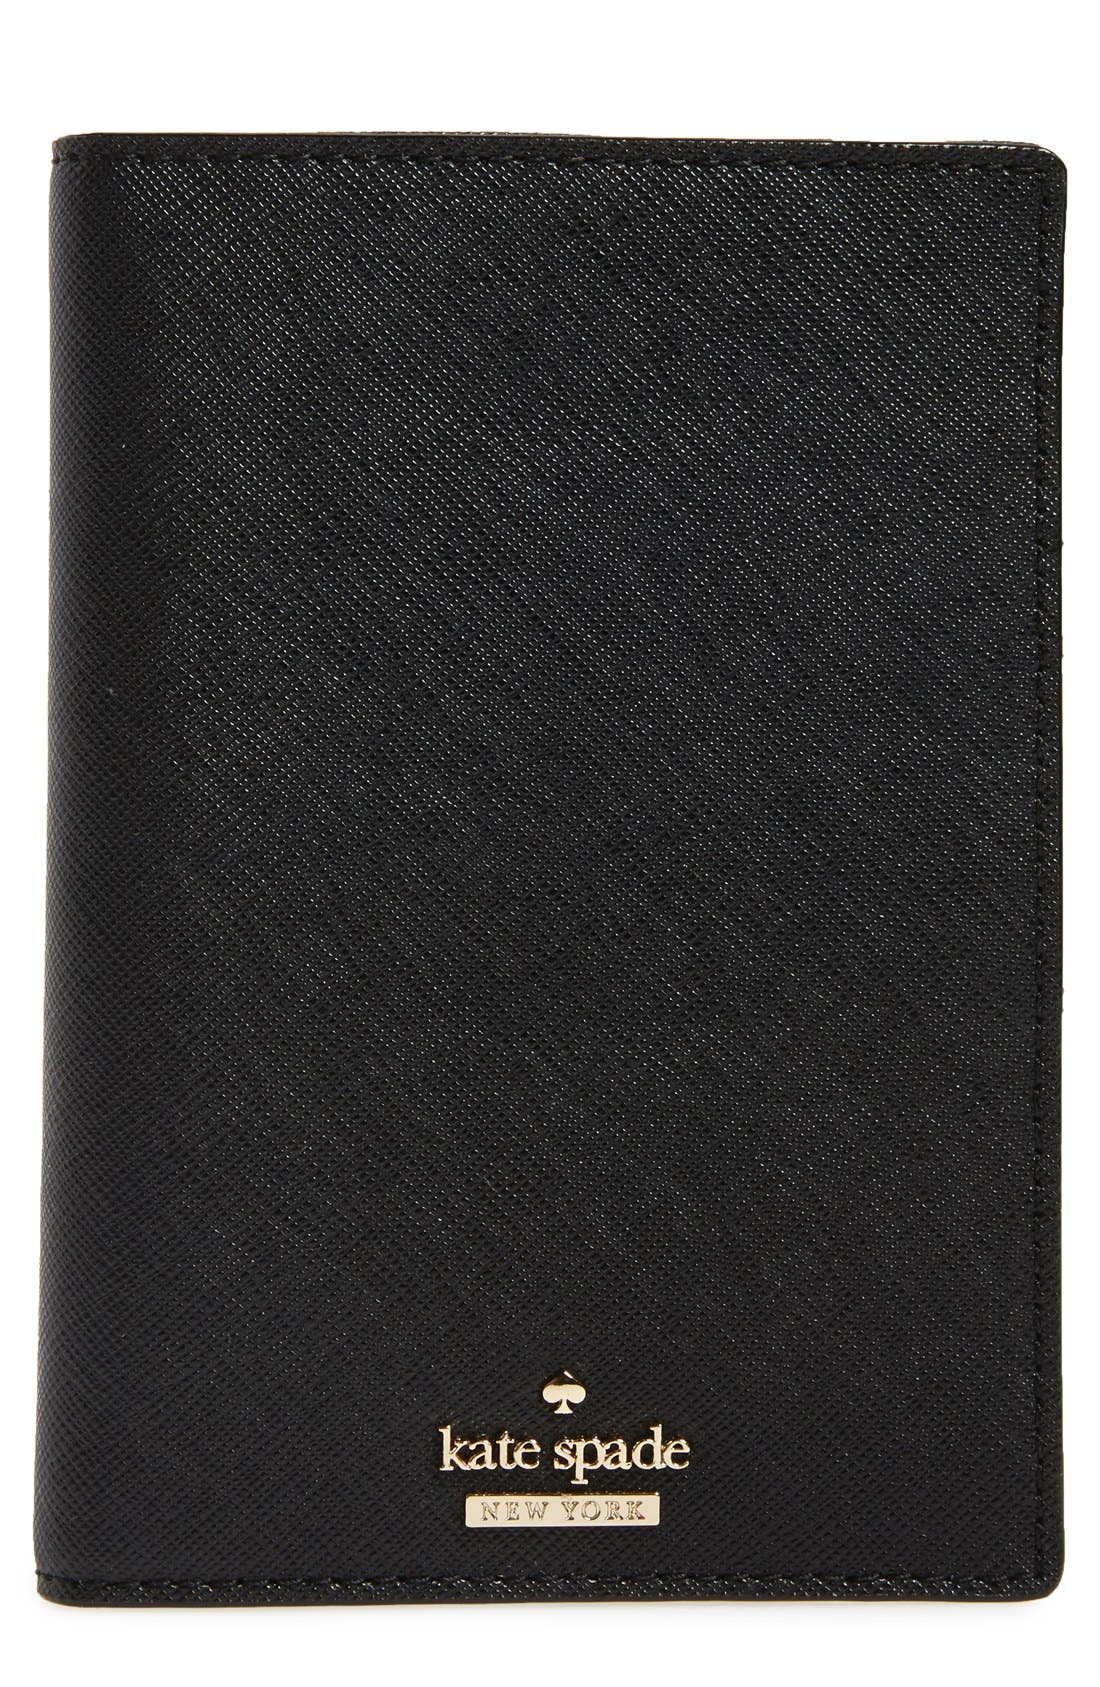 KATE SPADE NEW YORK cameron street leather passport holder